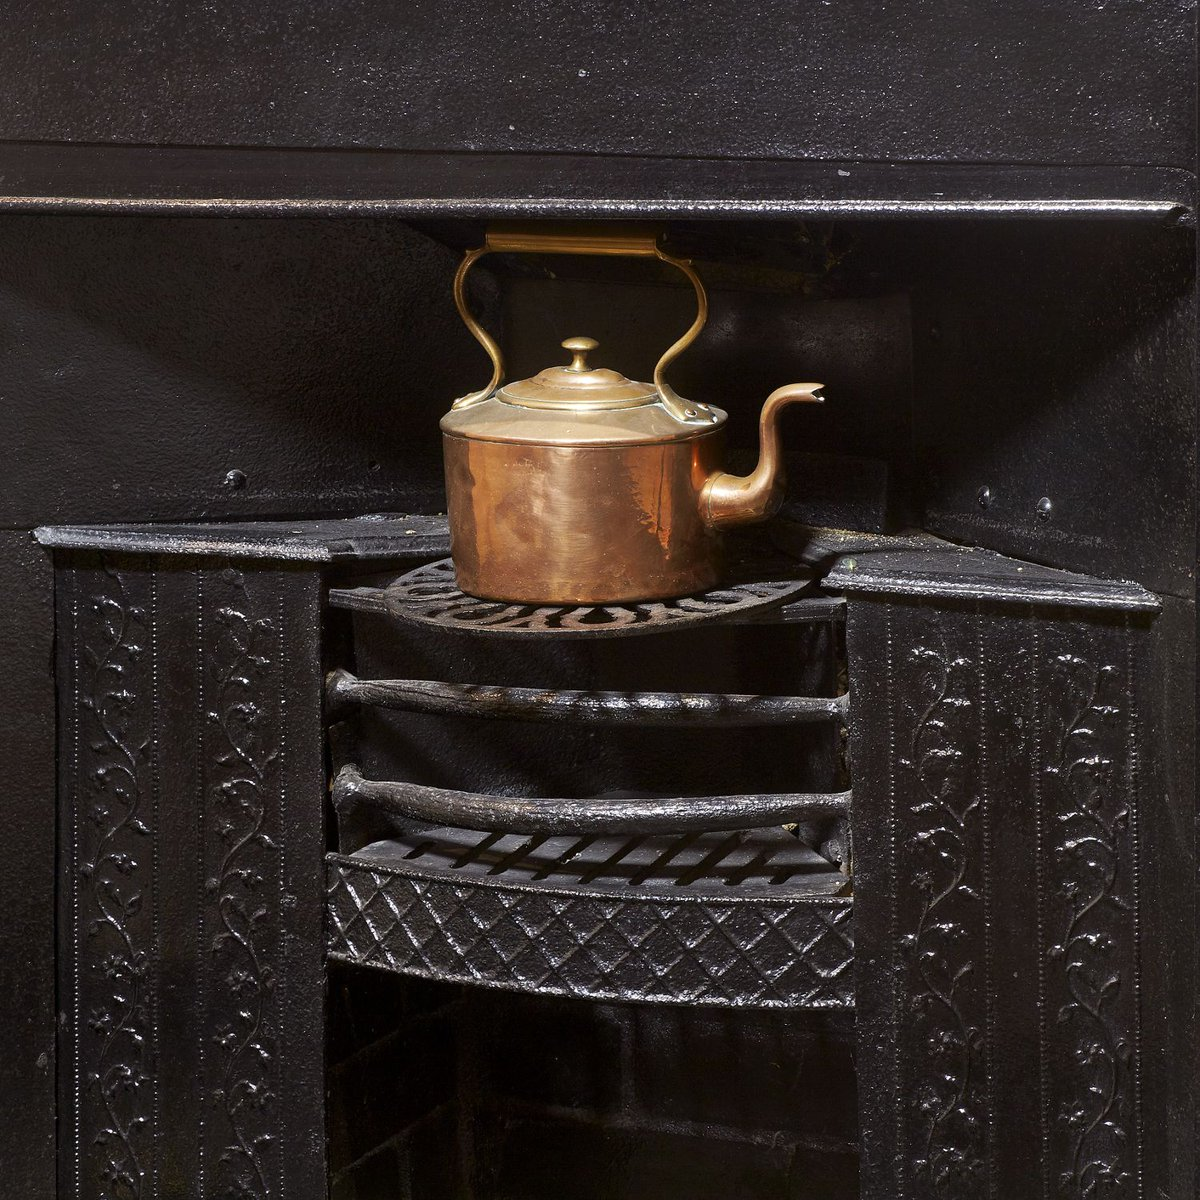 A new object has been added to our Treasures from the Collection pages. Read on to discover the extraordinary story behind the unassuming cast iron grate in the Dining Room fireplace here at Jane Austens House: buff.ly/330If8F #AustenTreasures